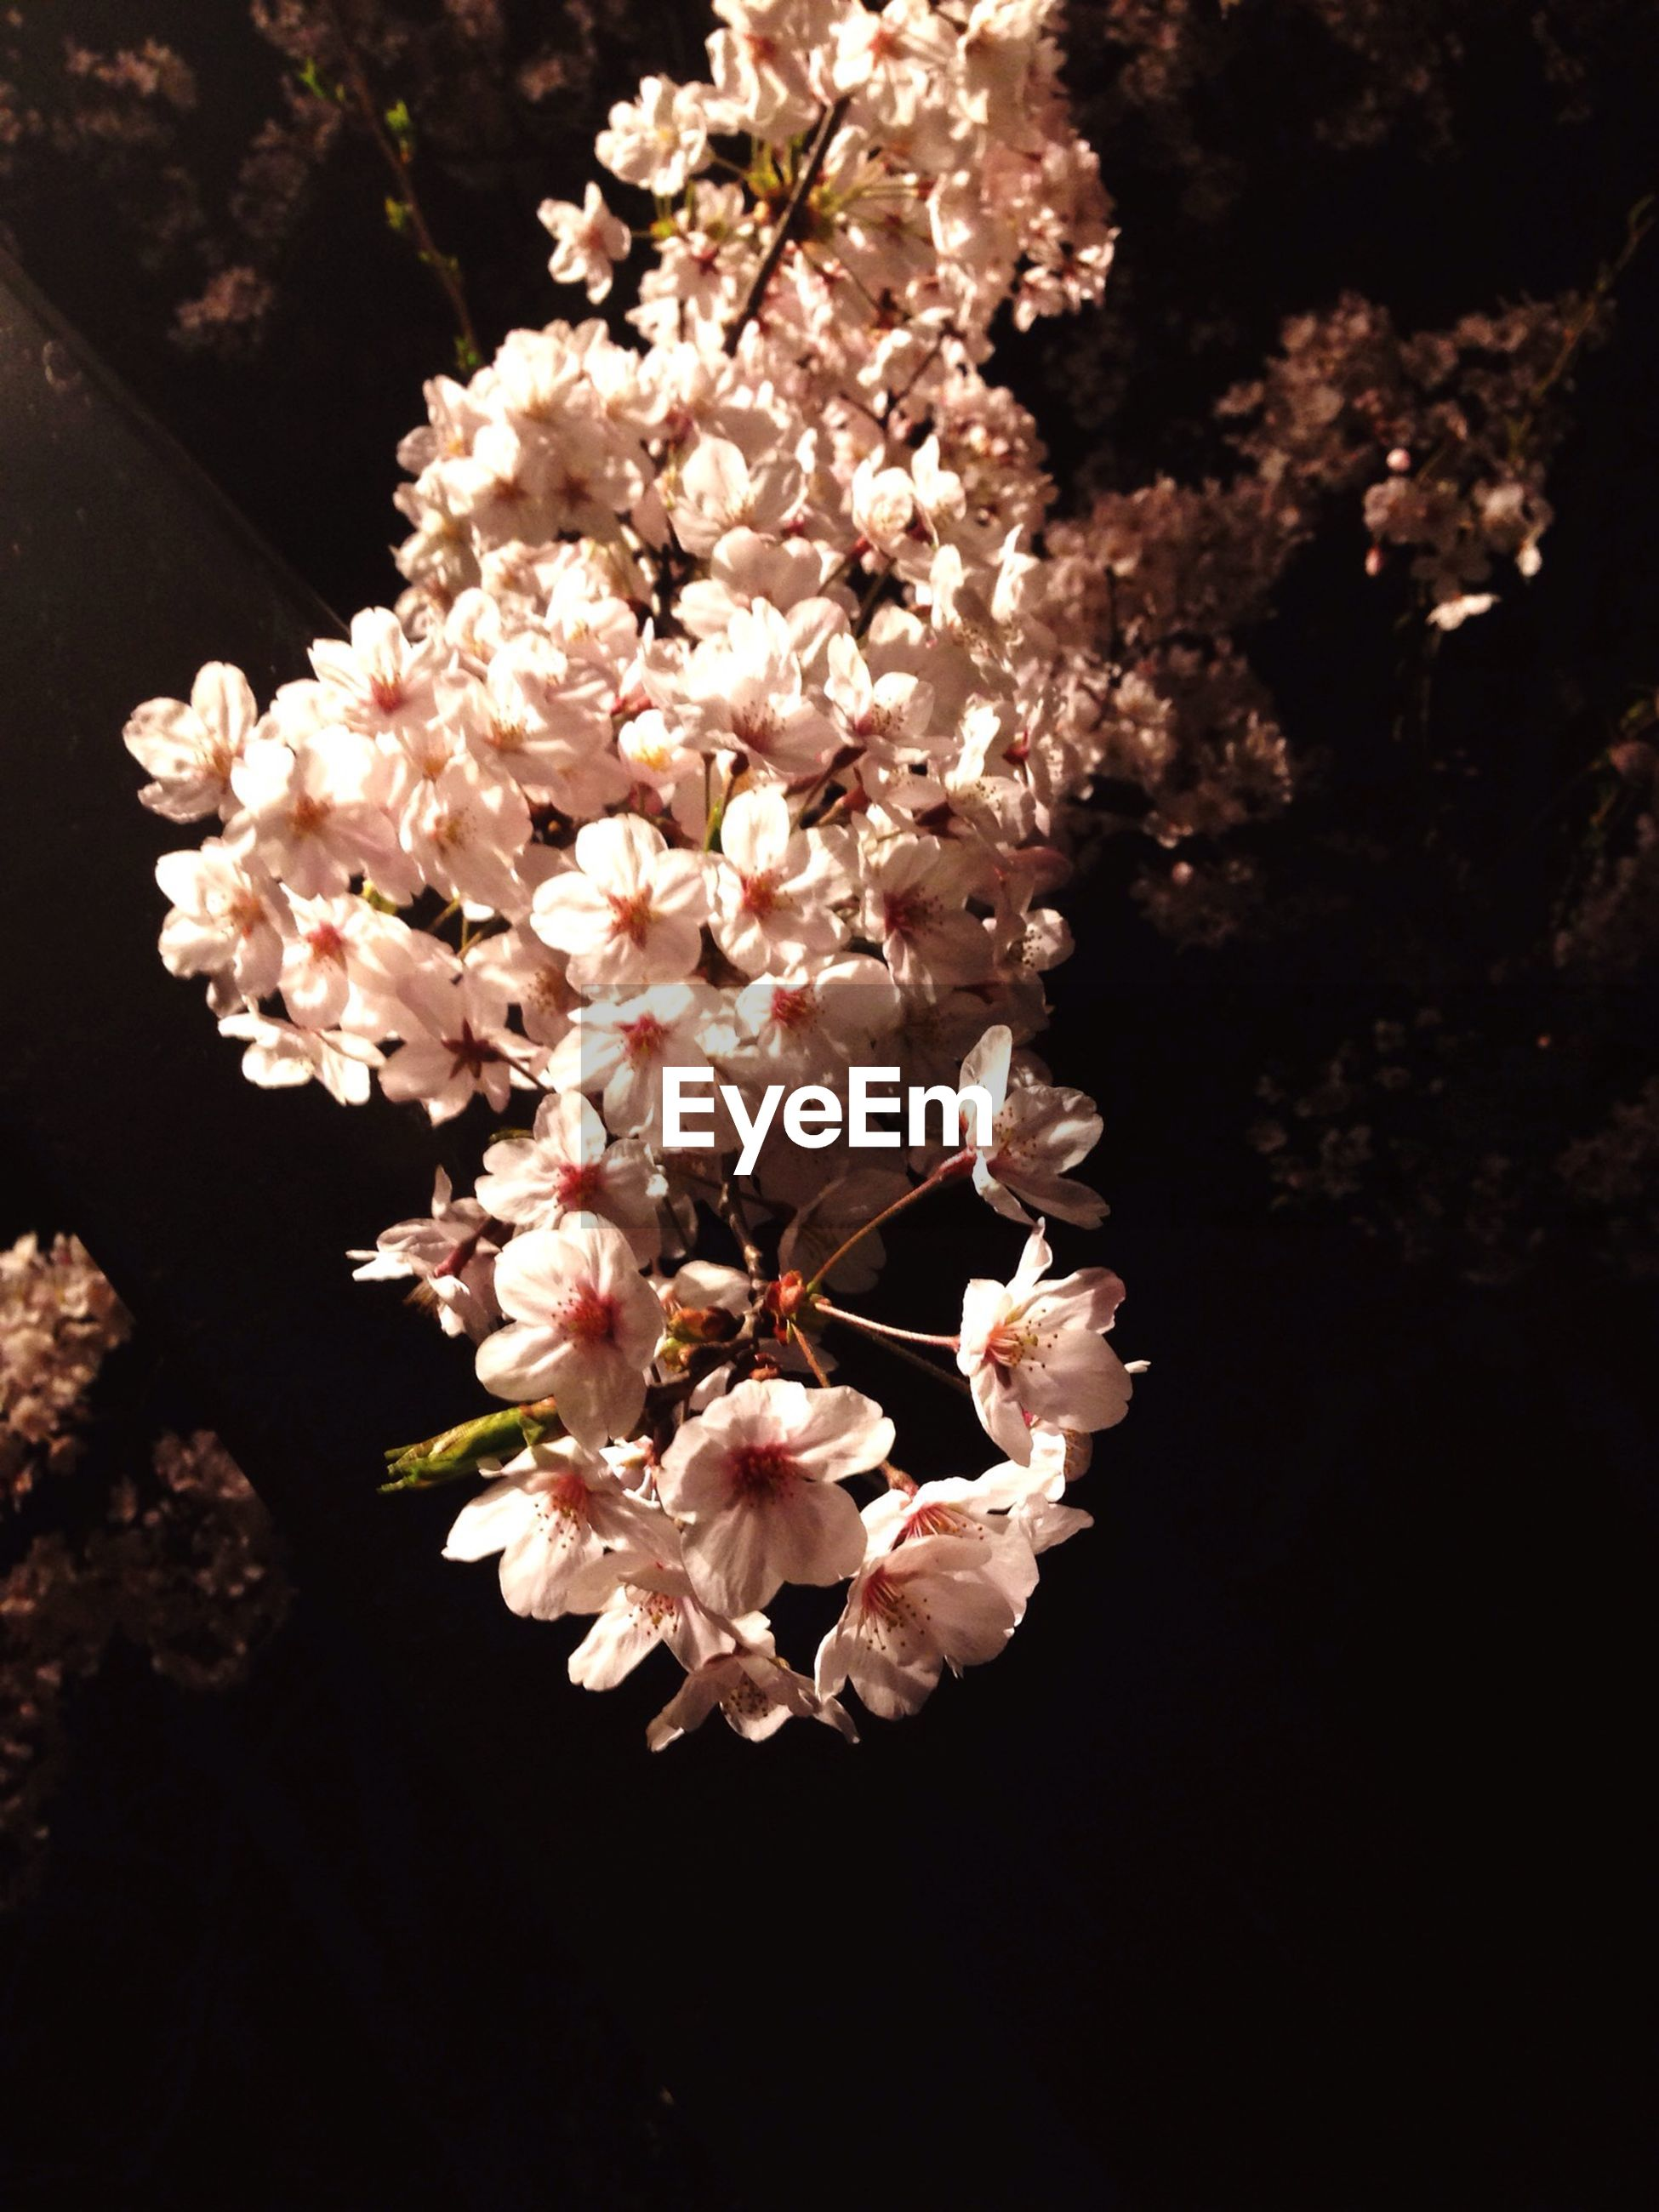 flower, freshness, growth, fragility, beauty in nature, branch, petal, tree, nature, blossom, cherry blossom, pink color, close-up, flower head, blooming, in bloom, cherry tree, springtime, twig, botany